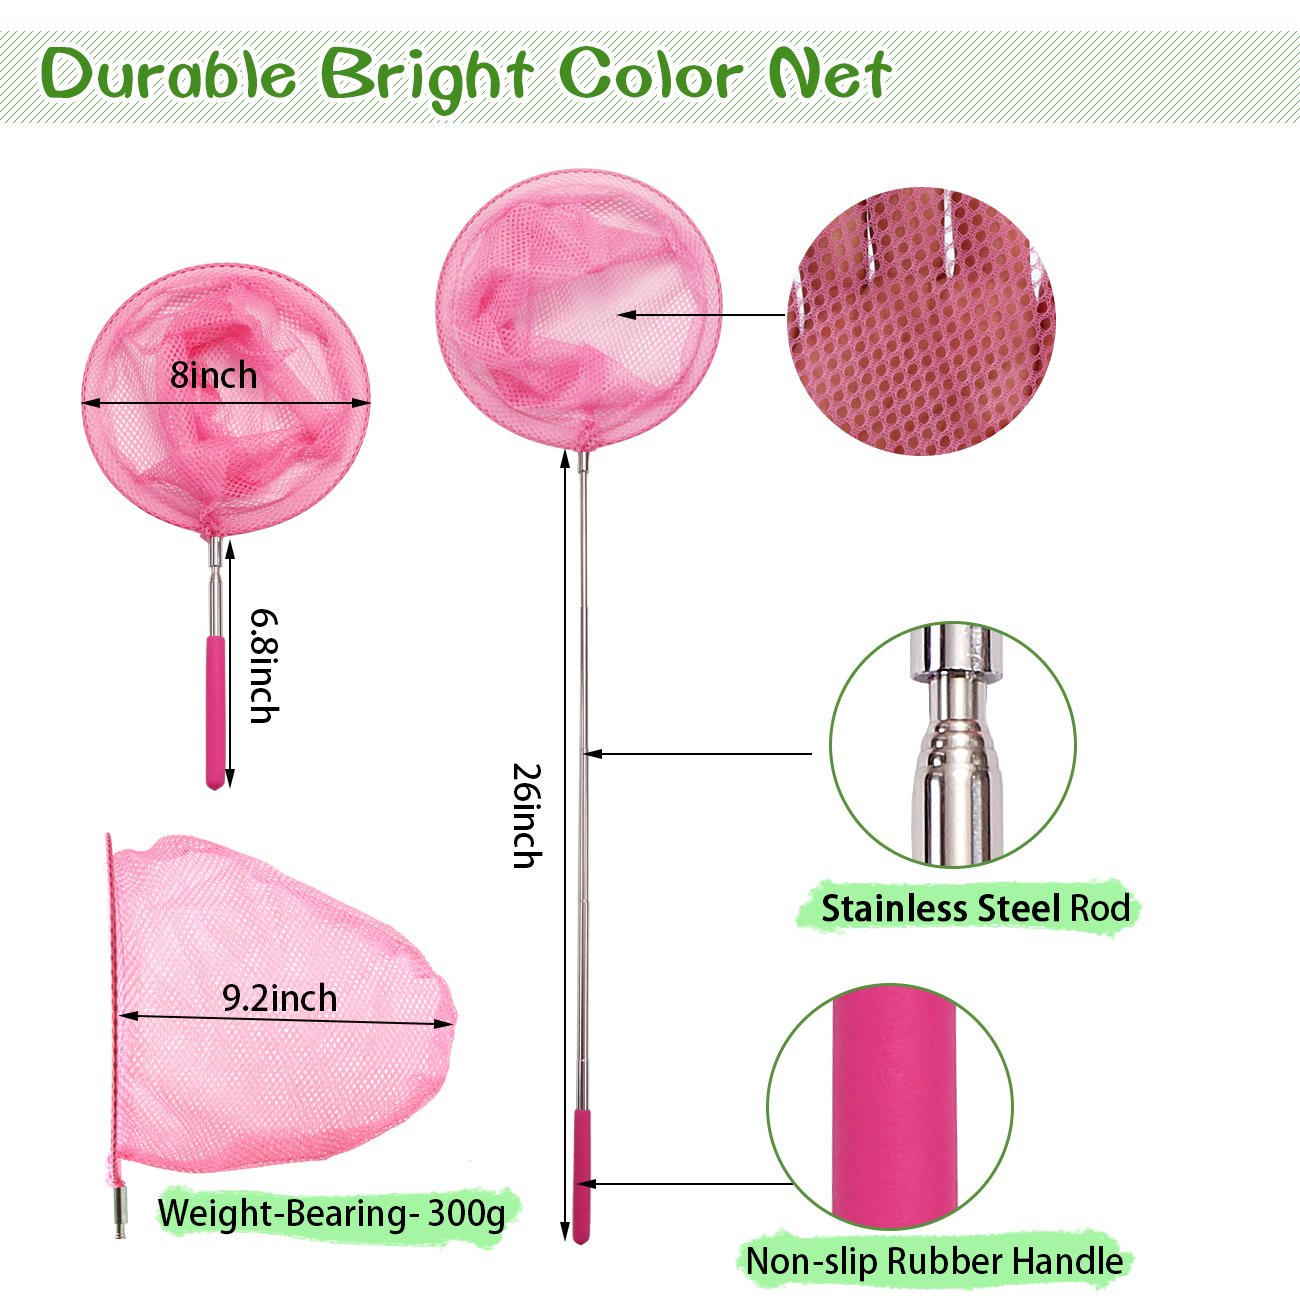 Cooliz Telescopic Butterfly Net Kit For Kids 6 Pack Bug Insect Diagram Catching Nets Extendable 34